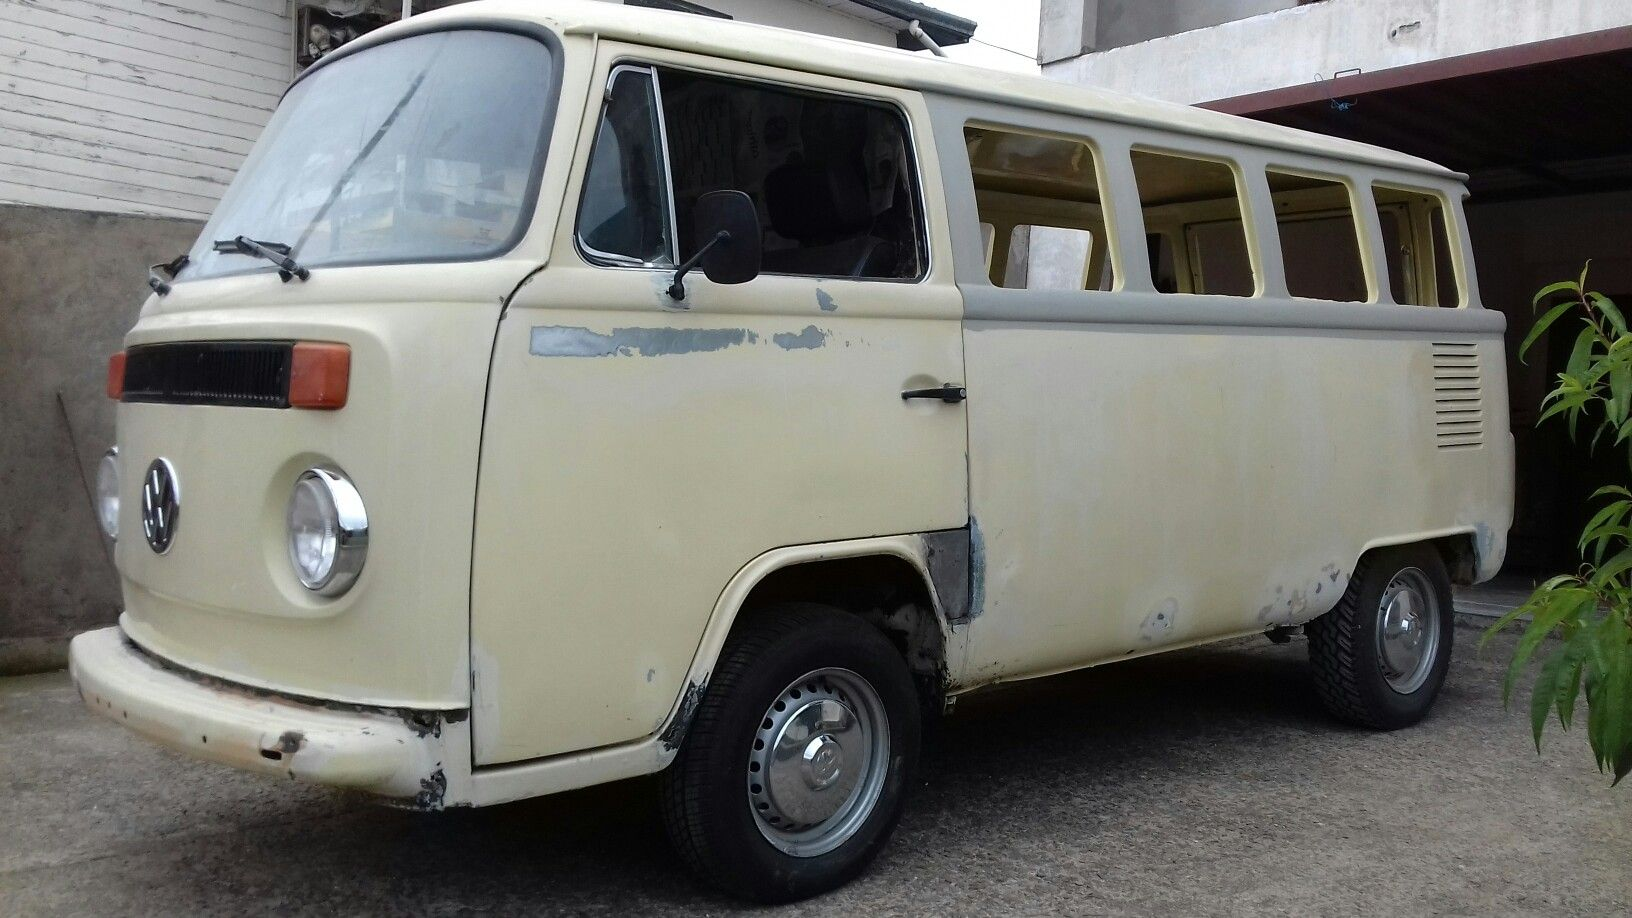 b5c5ec7138 Discover ideas about Vw Camper